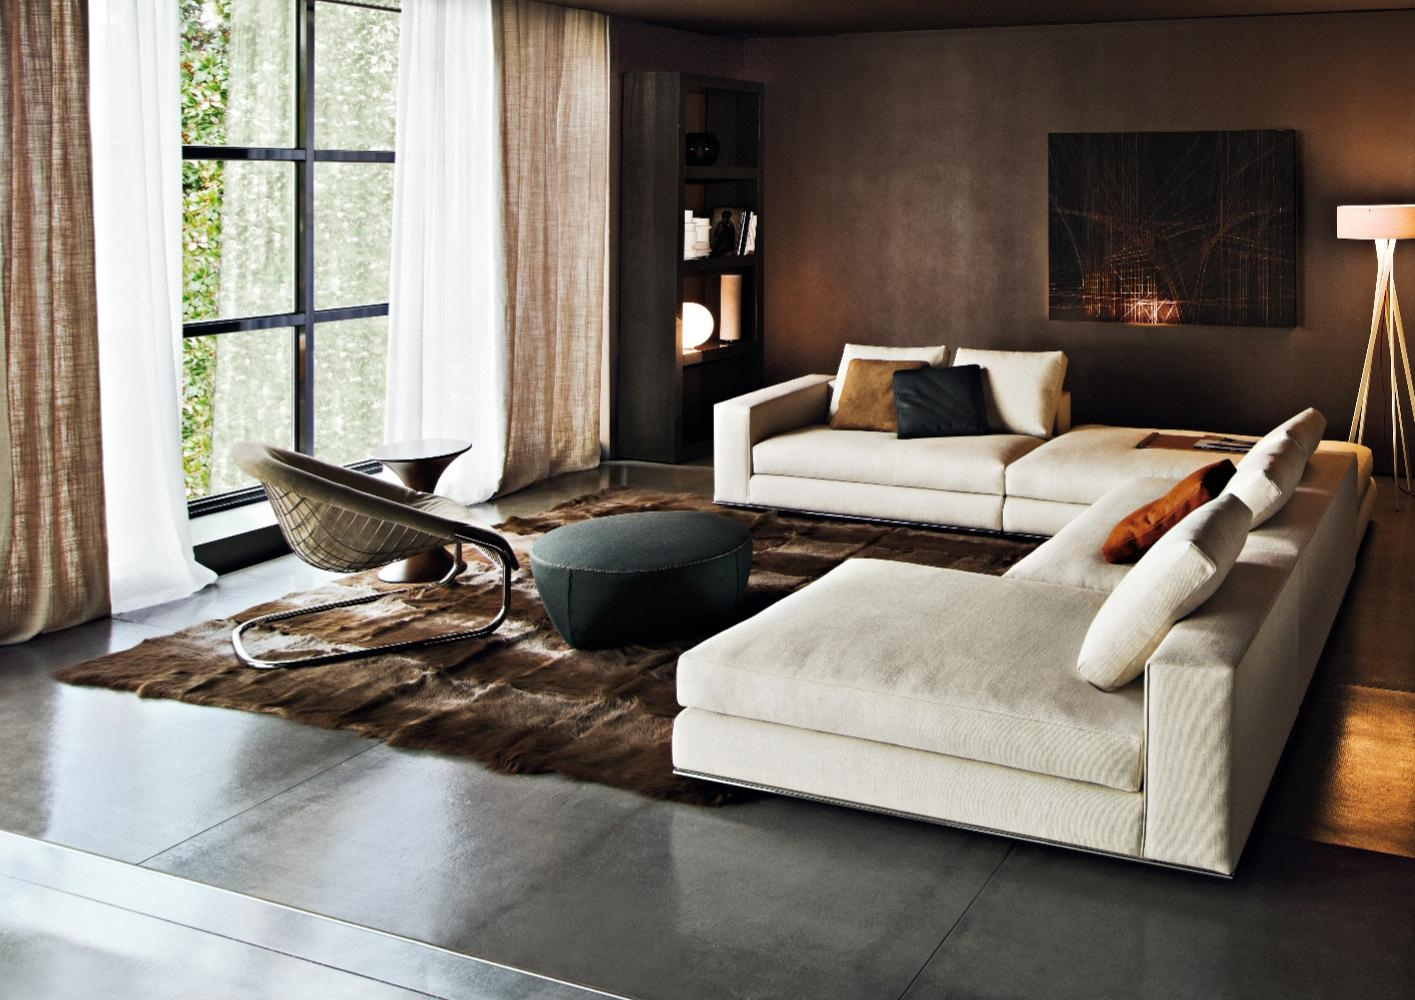 Hamilton Sofa | Designedrodolfo Dordoni, Minotti, Orange Skin Within Hamilton Sofas (View 8 of 20)